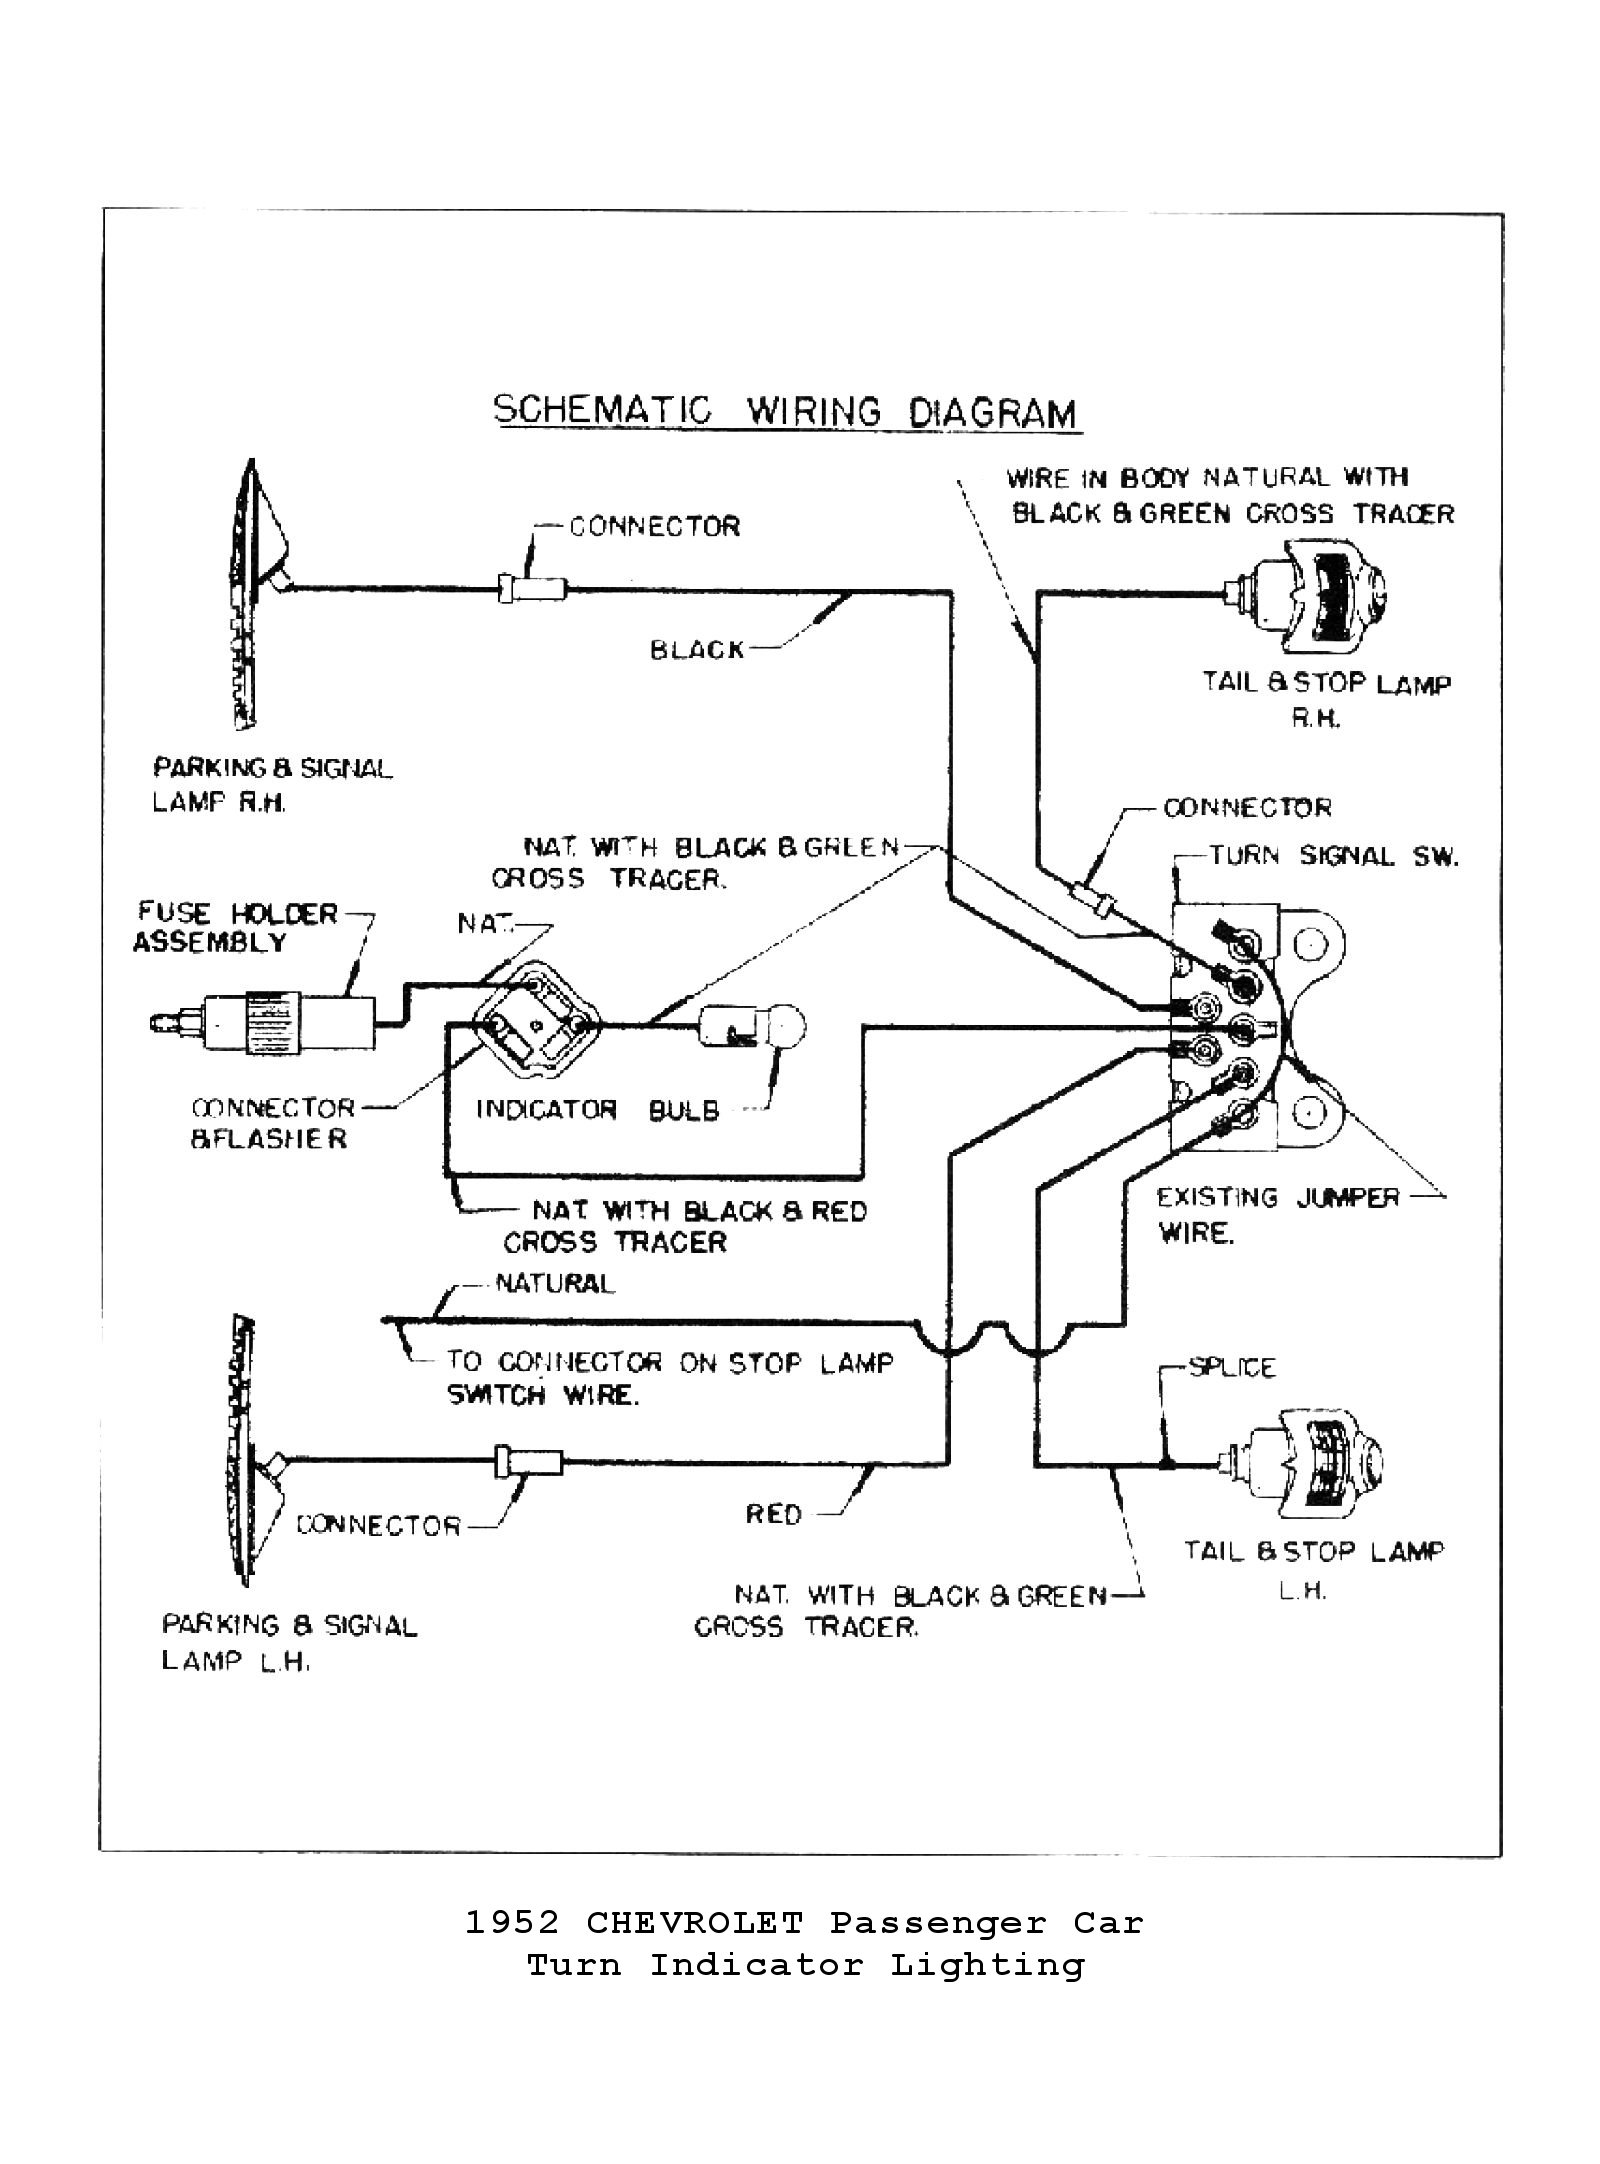 Prt Lrg together with Lexus Gs Engine Fuse Box Diagram furthermore Chevrolet Malibu furthermore Pontiac Firebird Drier likewise Pontiac Executive Safari. on 1959 pontiac wiring diagram